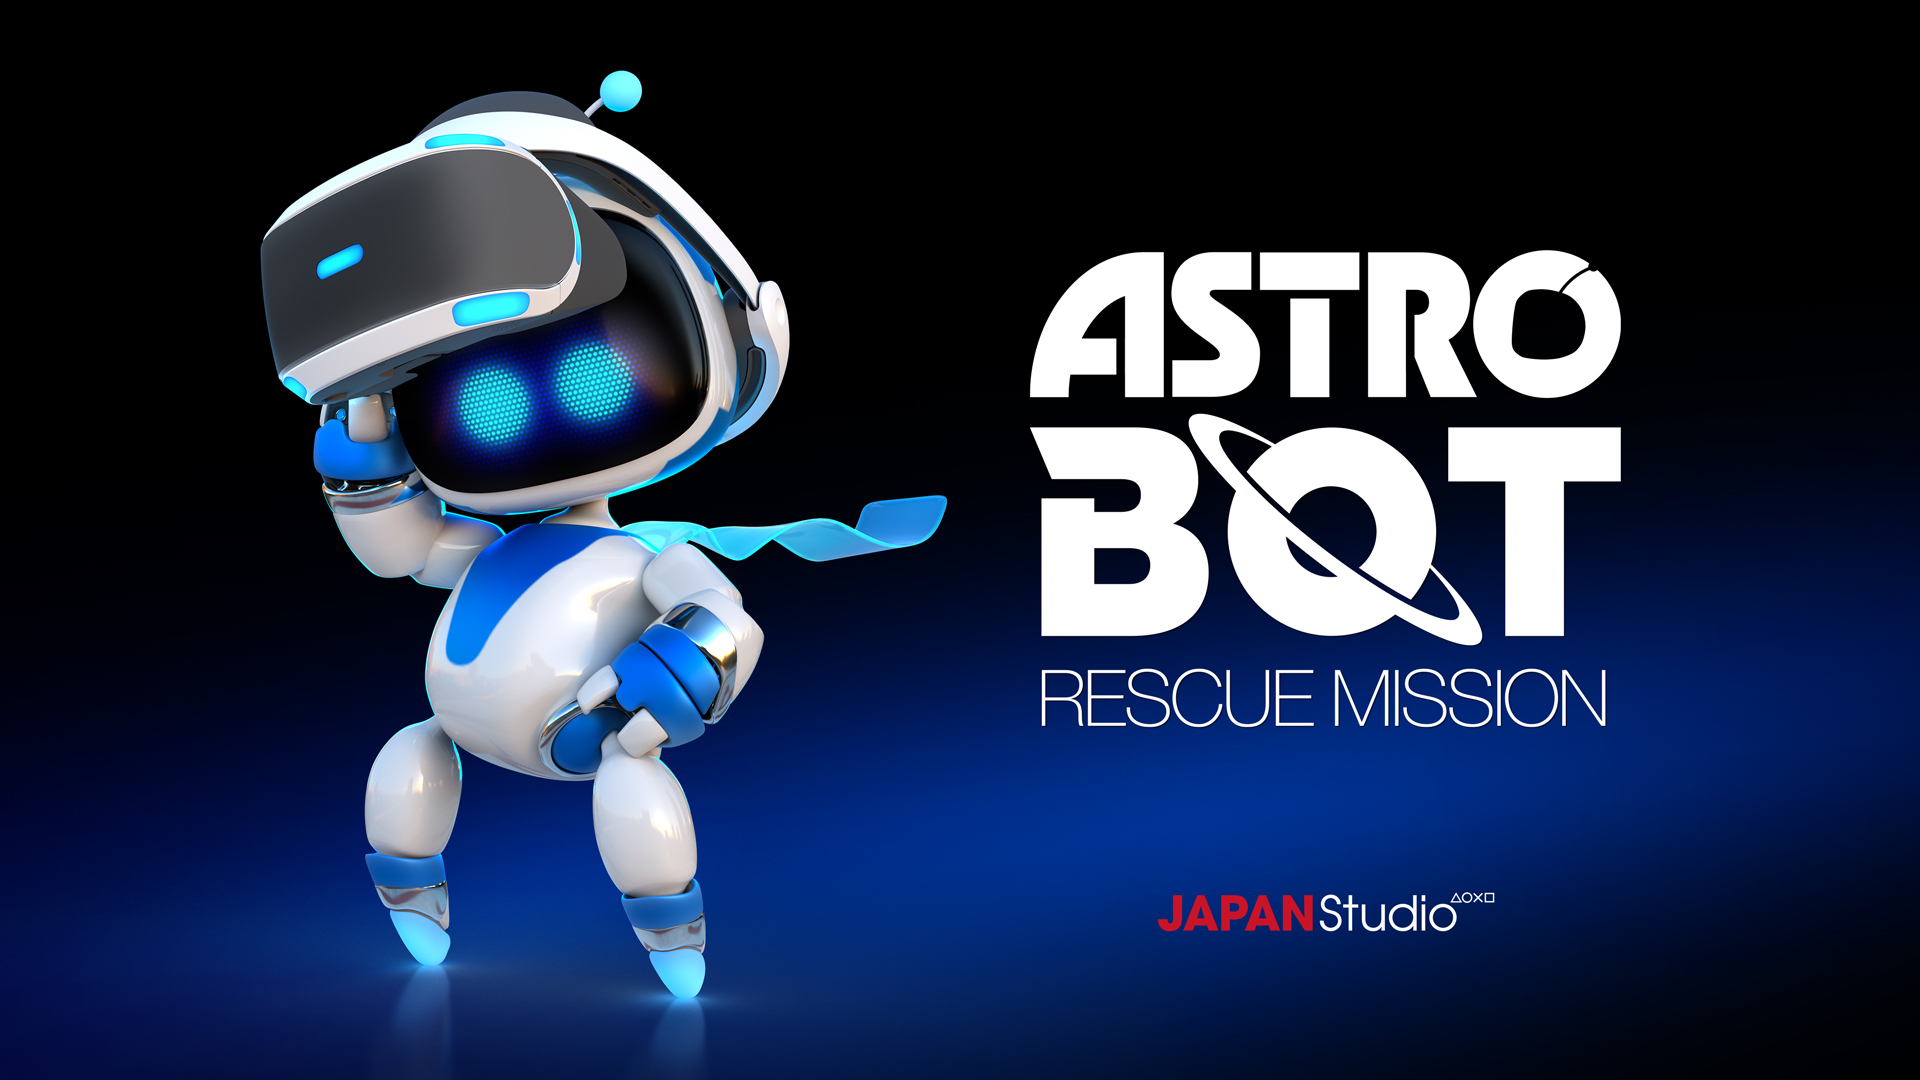 『ASTRO BOT:RESCUE MISSION』キービジュアル (c)Sony Interactive Entertainment Inc.